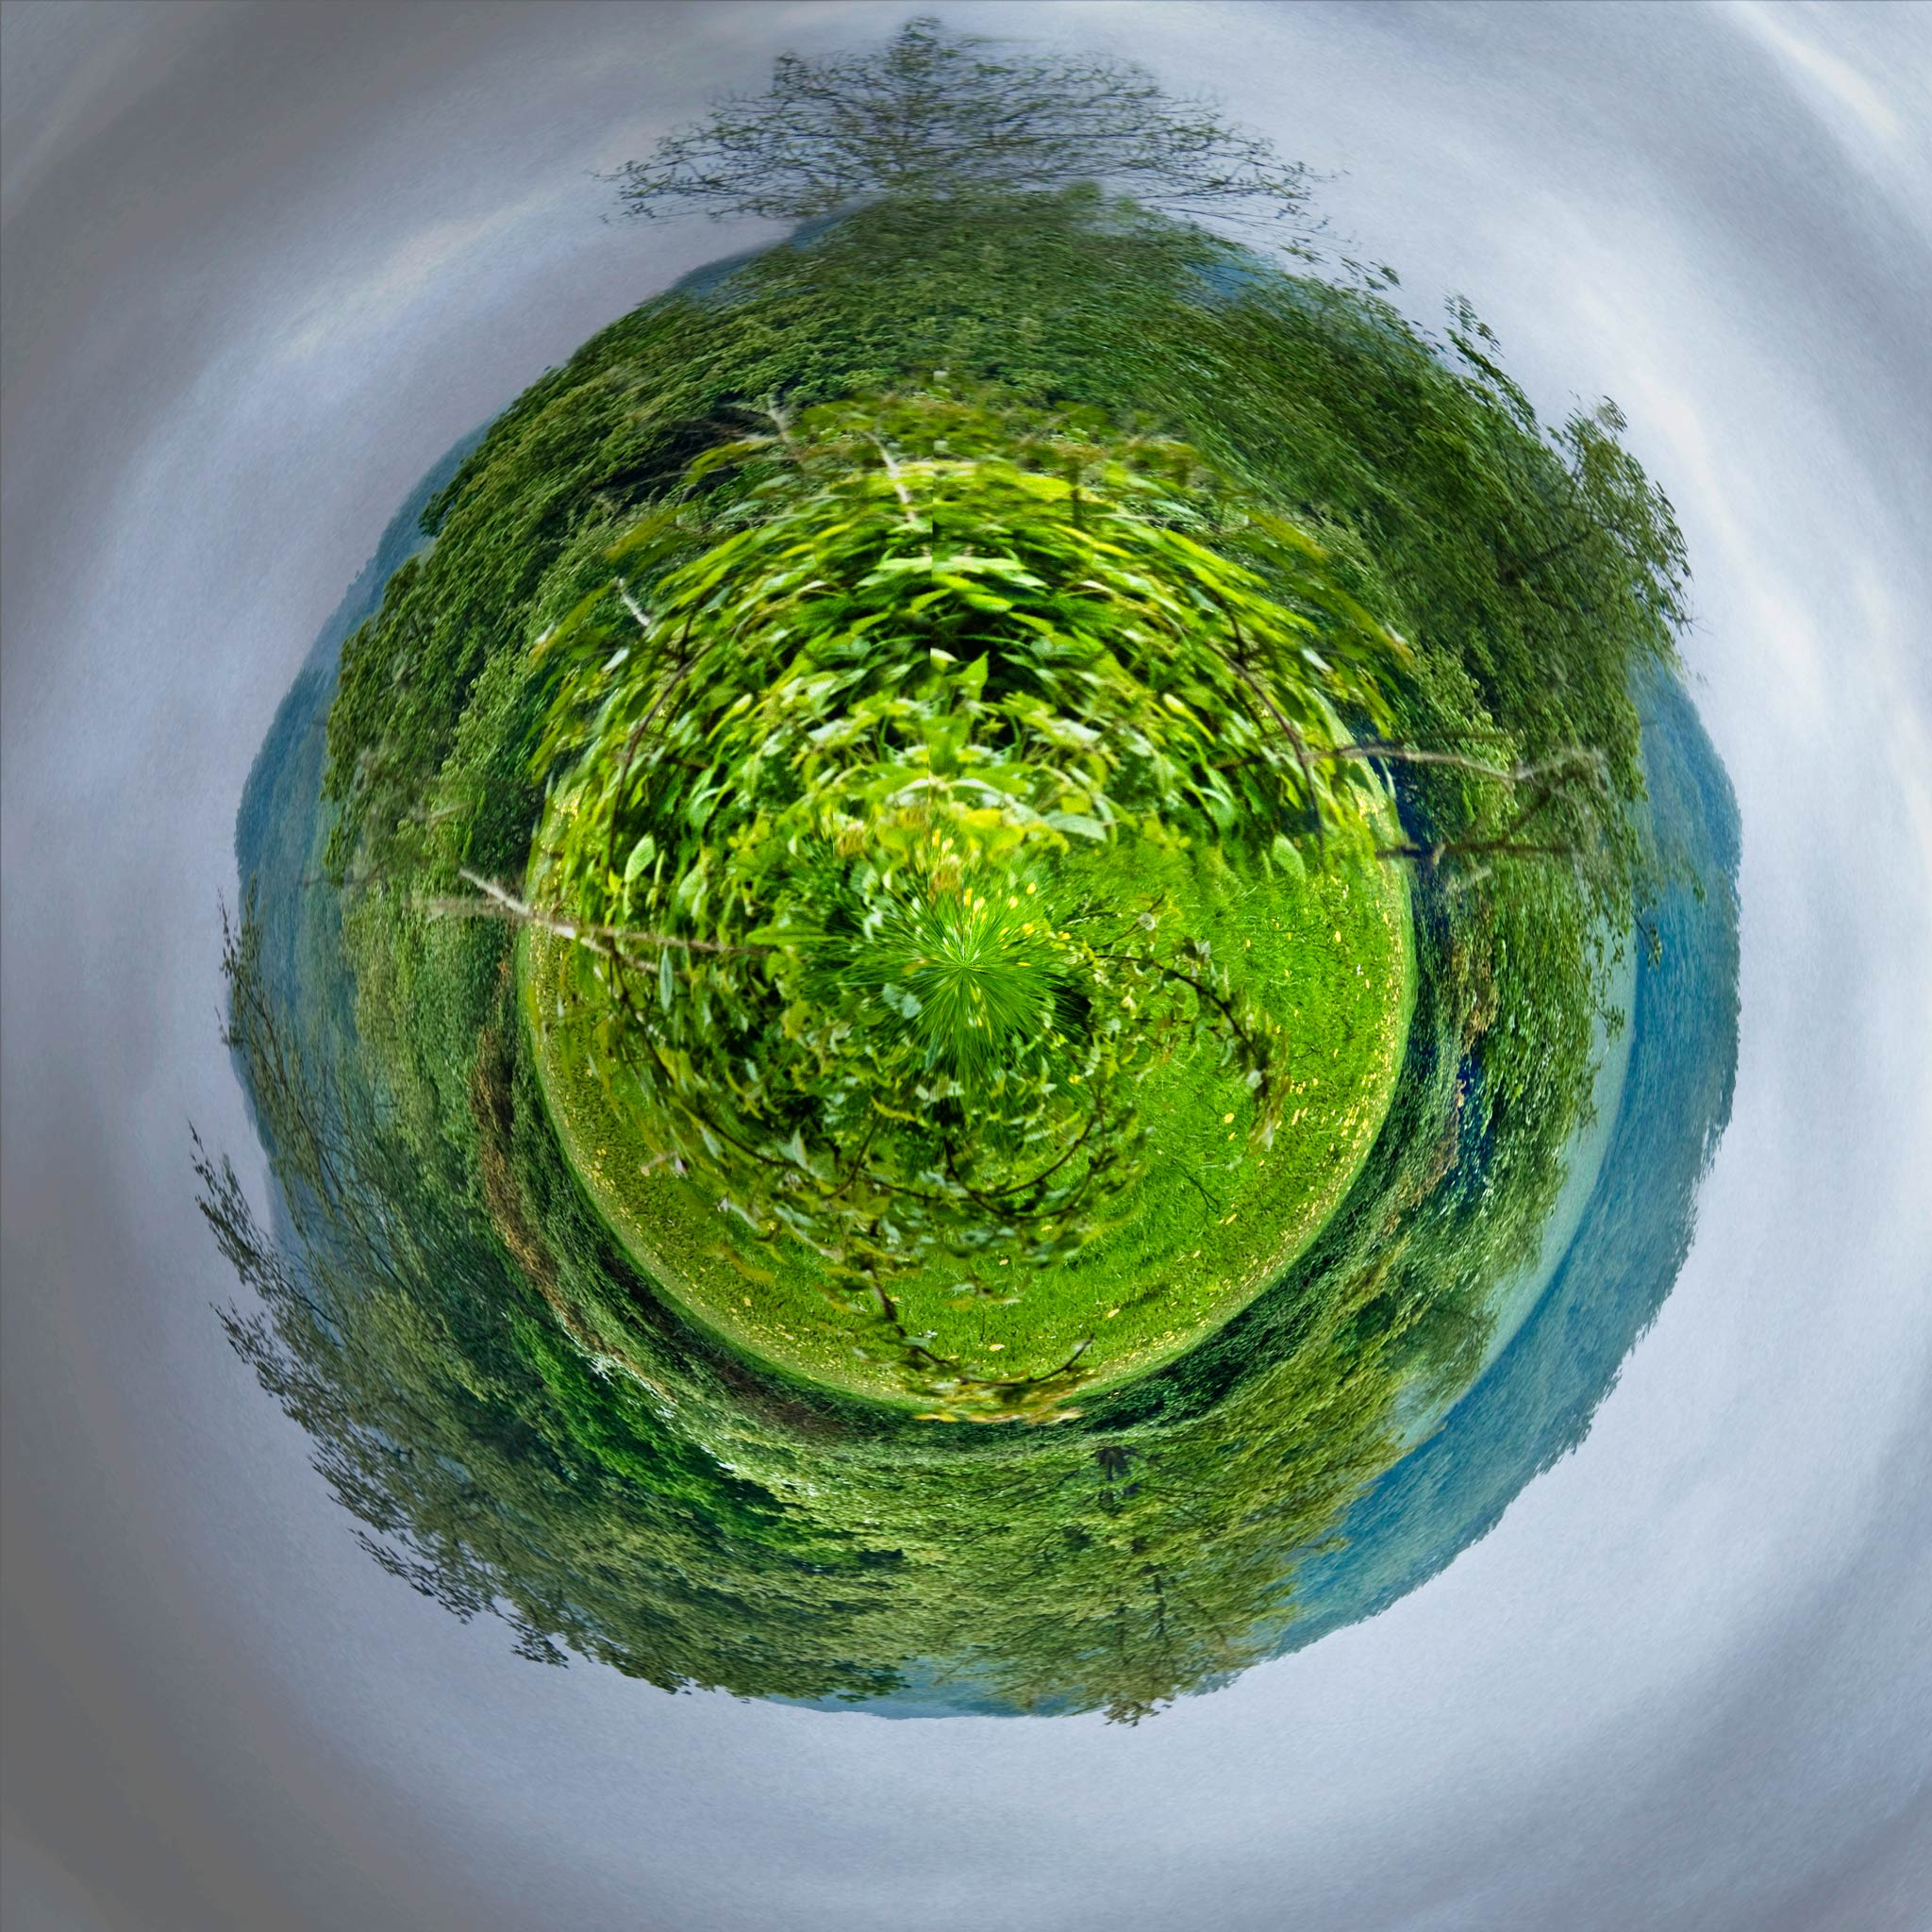 Photo: A Tiny Battle Field Yes, pun intended.  This is the battlefield at Battle, UK, where the Battle of Hastings was fought in 1066.  I saw a photo of someplace else done with the Tiny Planet iPhone app.  Call me cheap, but I've had my iPhone for over a year now, and I haven't found any app so profoundly attractive or interesting that I have been willing to pop the 99 cents (or more) for it. It's kind of like pay TV and movies. Why would I?  Nevertheless, I thought I'd go into the archives and see if there wasn't something I could play around with. Keeping in mind that it never crossed my mind to do a tiny planet picture when I clicked the shutter, I think this came out pretty good.  I did duplicate one corner to another, then cloned bits here and there so as to keep it from being totally symmetrical, and I think I succeeded. The original had a plain grey sky, so I substituted that as well, to give a bit of . . . content- not to mention context.  No other plugins or applications were used than Lightroom 5 and Photoshop CC.  #TinyPlanet   #England   #BattleOfHastings   #Battlefield